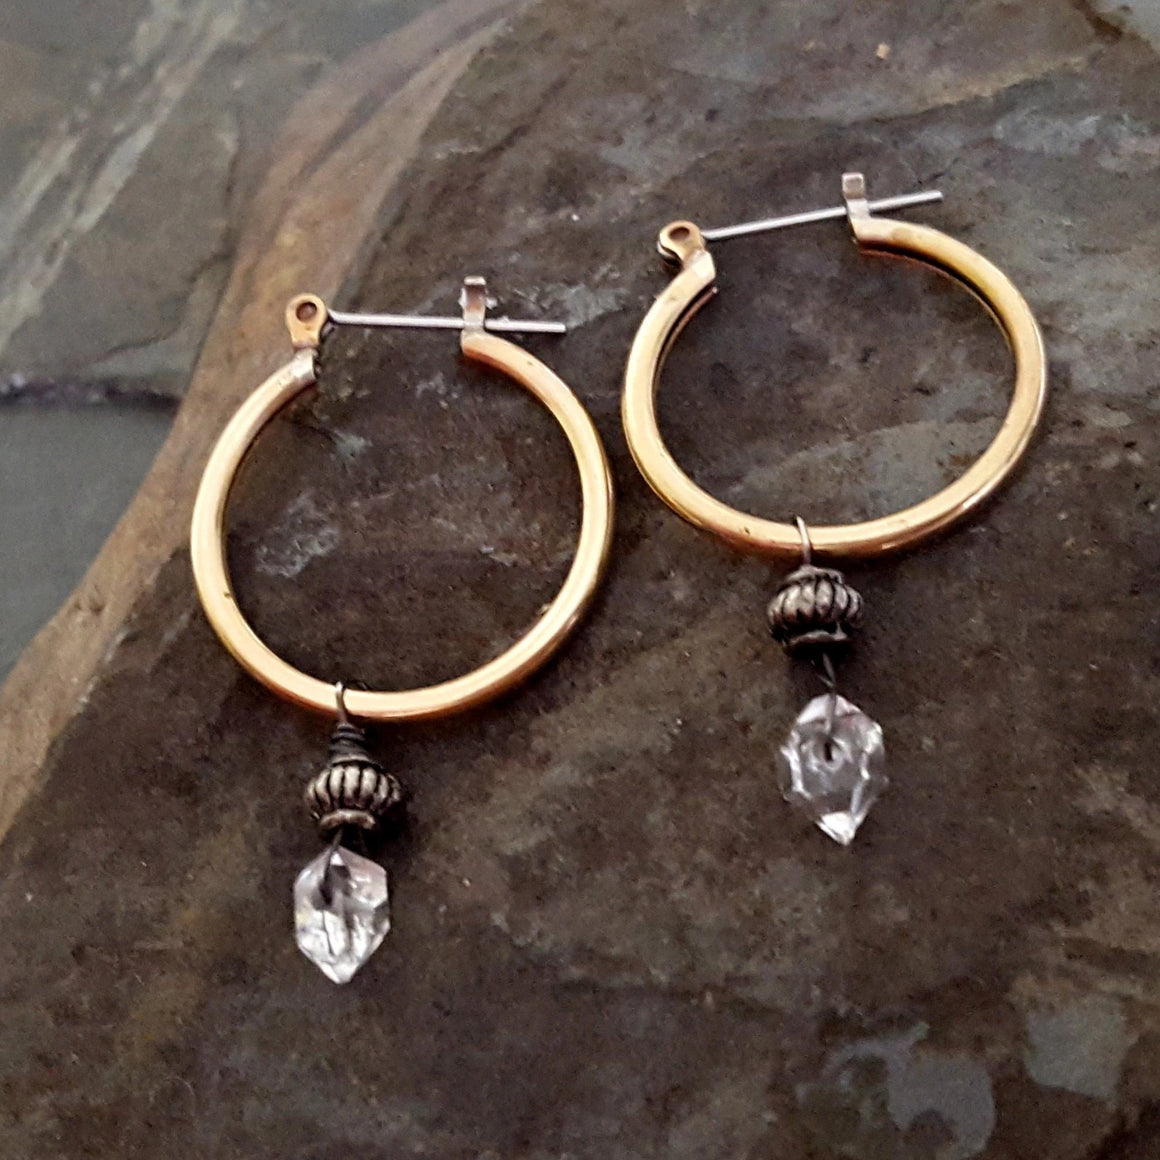 Gold Hoop Herkimer Diamond Earrings, Small Brass Hoops, Dangle Stone Hoop Earrings, Vintage Brass Hoop Gemstone Earrings, Gold Brass Hoops - ViaLove Designs